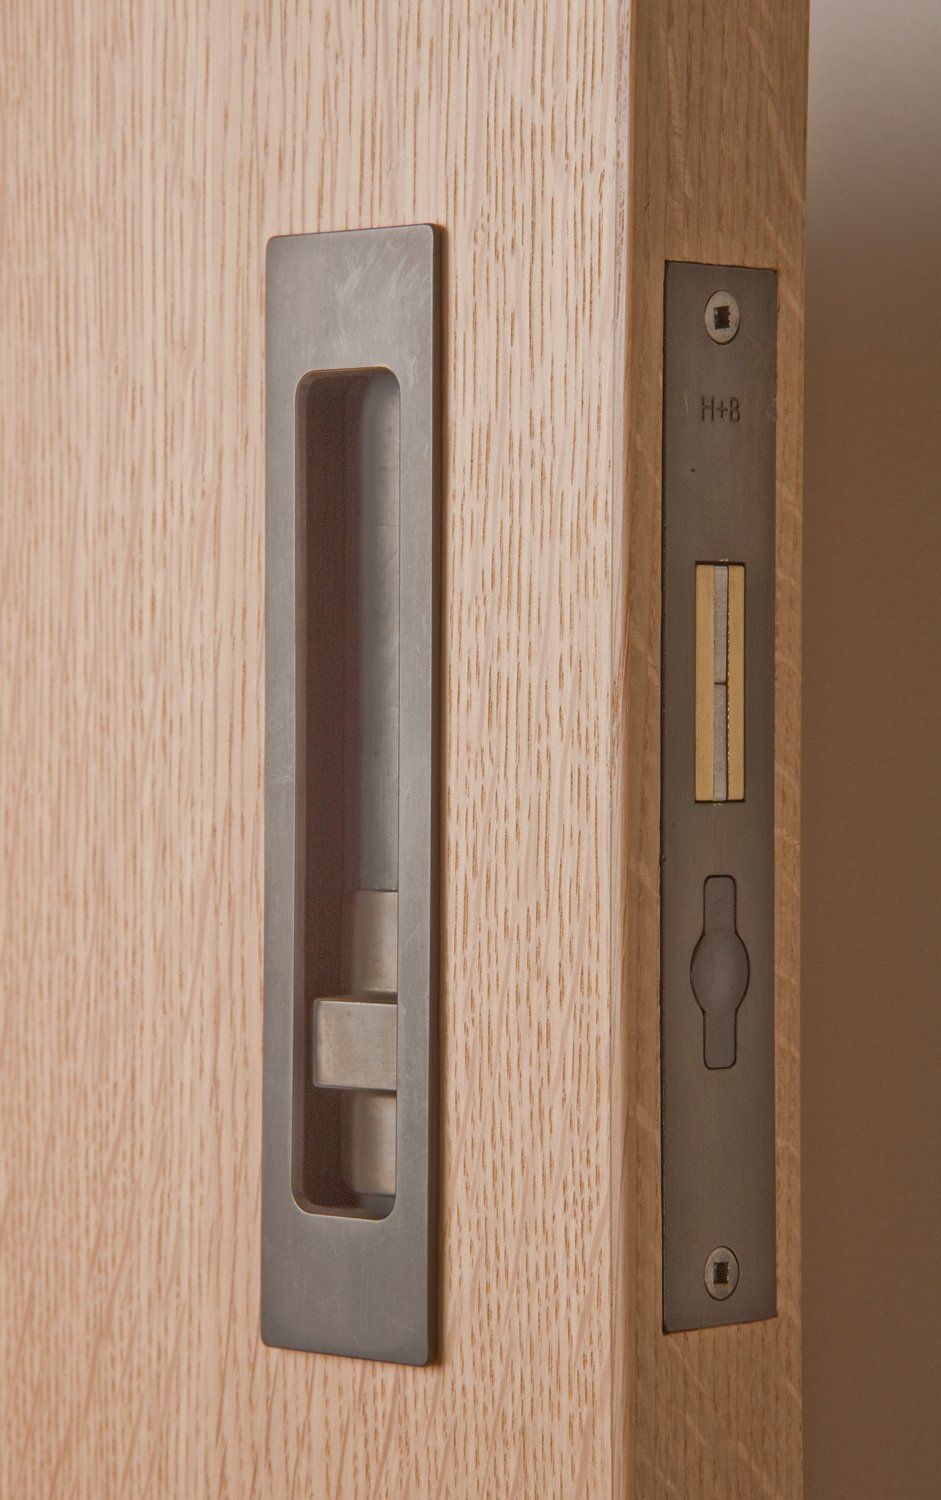 Sliding Door Hardware Hb 690 Privacy Lock Halliday Baillie Barn